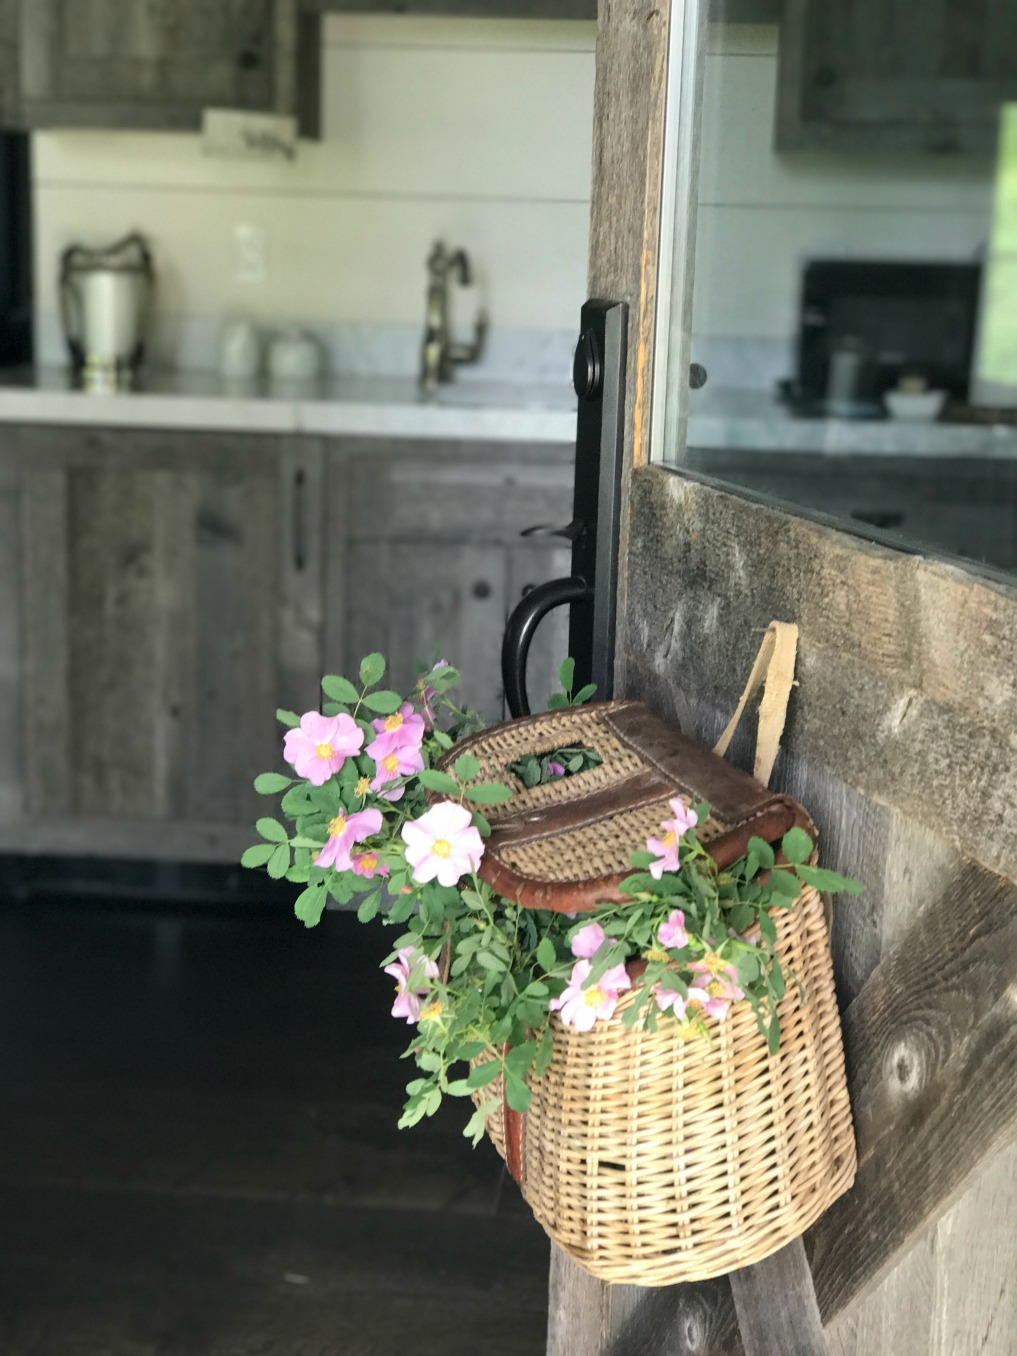 Eclectic Home Tour of Sanctuary Home - welcome to Crow Hollow Ranch. This 500 acre property is complete with farmhouse, guest house and rustic cabin kellyelko.com #hometour #frontdoor #vintage #rusticdecor #barnwood #whitekitchen #homedecor